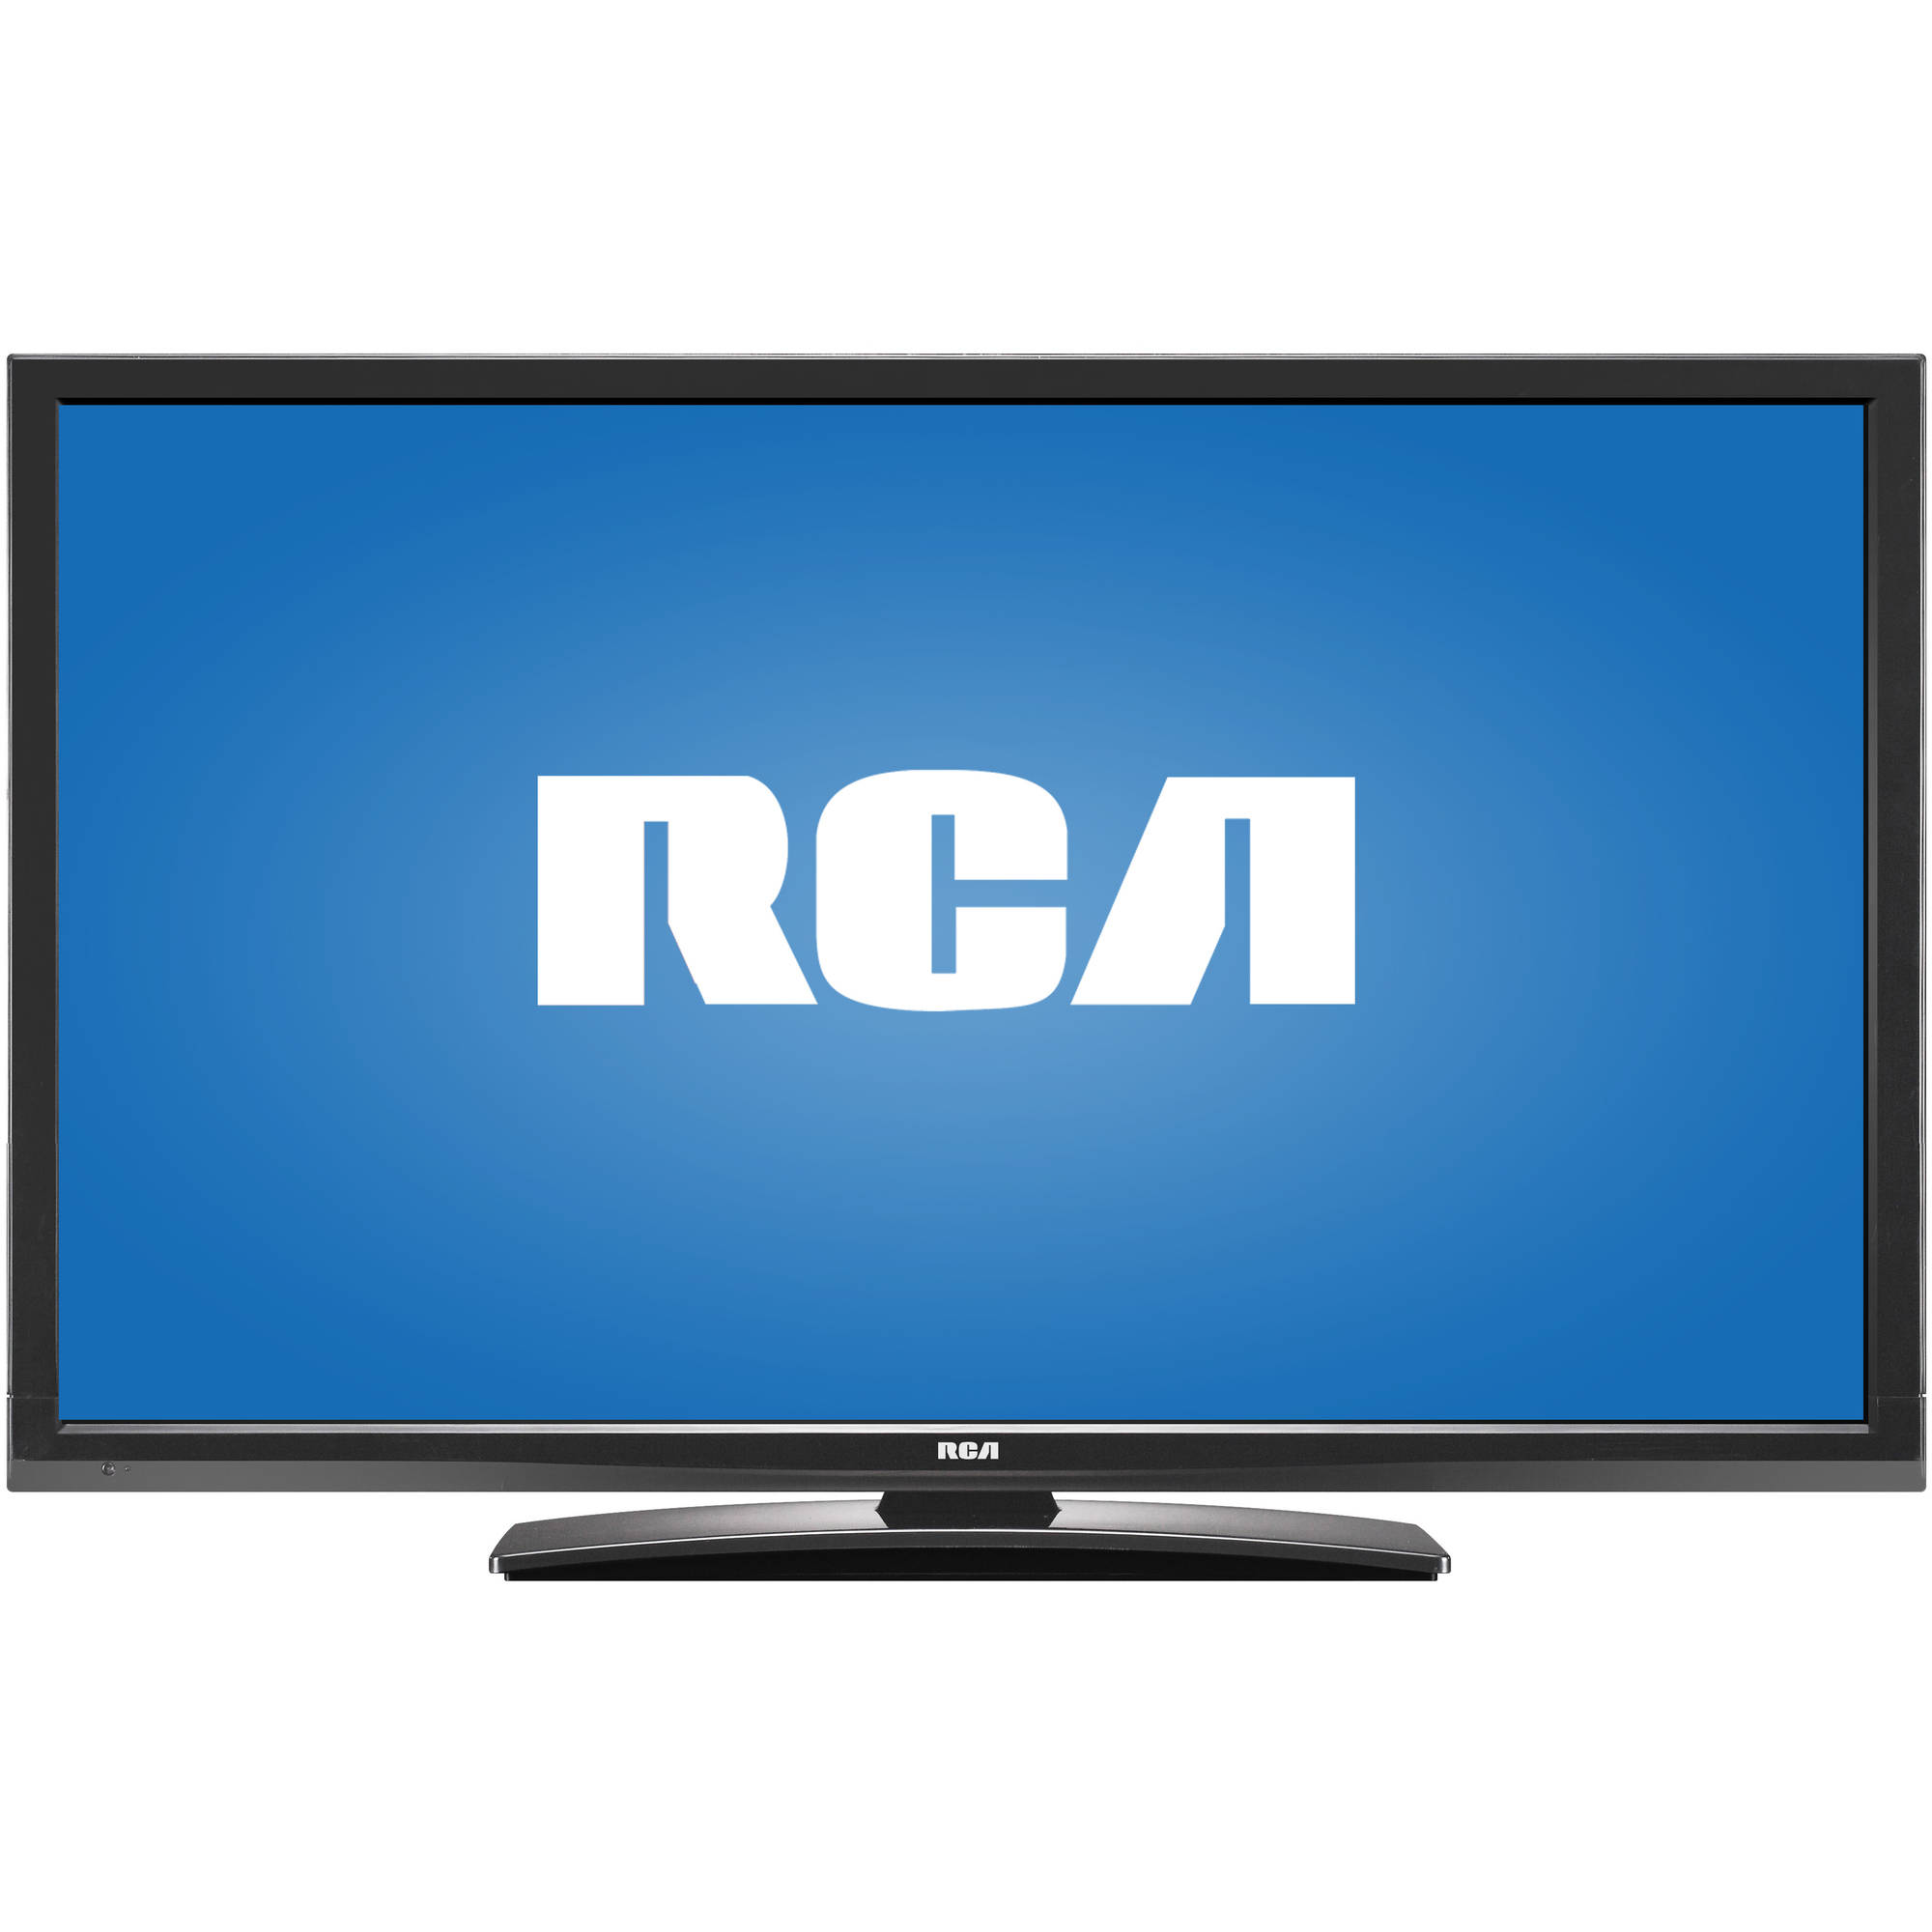 OPEN BOX - RCA LED24G45RQD 24? Full HD 1080p 60Hz LED HDTV TV DVD COMBO, 16:9 Wide Screen, 1000:1 Dynamic Contrast, Resolution 1920 x 1080, Tuner Mode ATSC/NTSC, Photo/Music/Movie USB Media Play